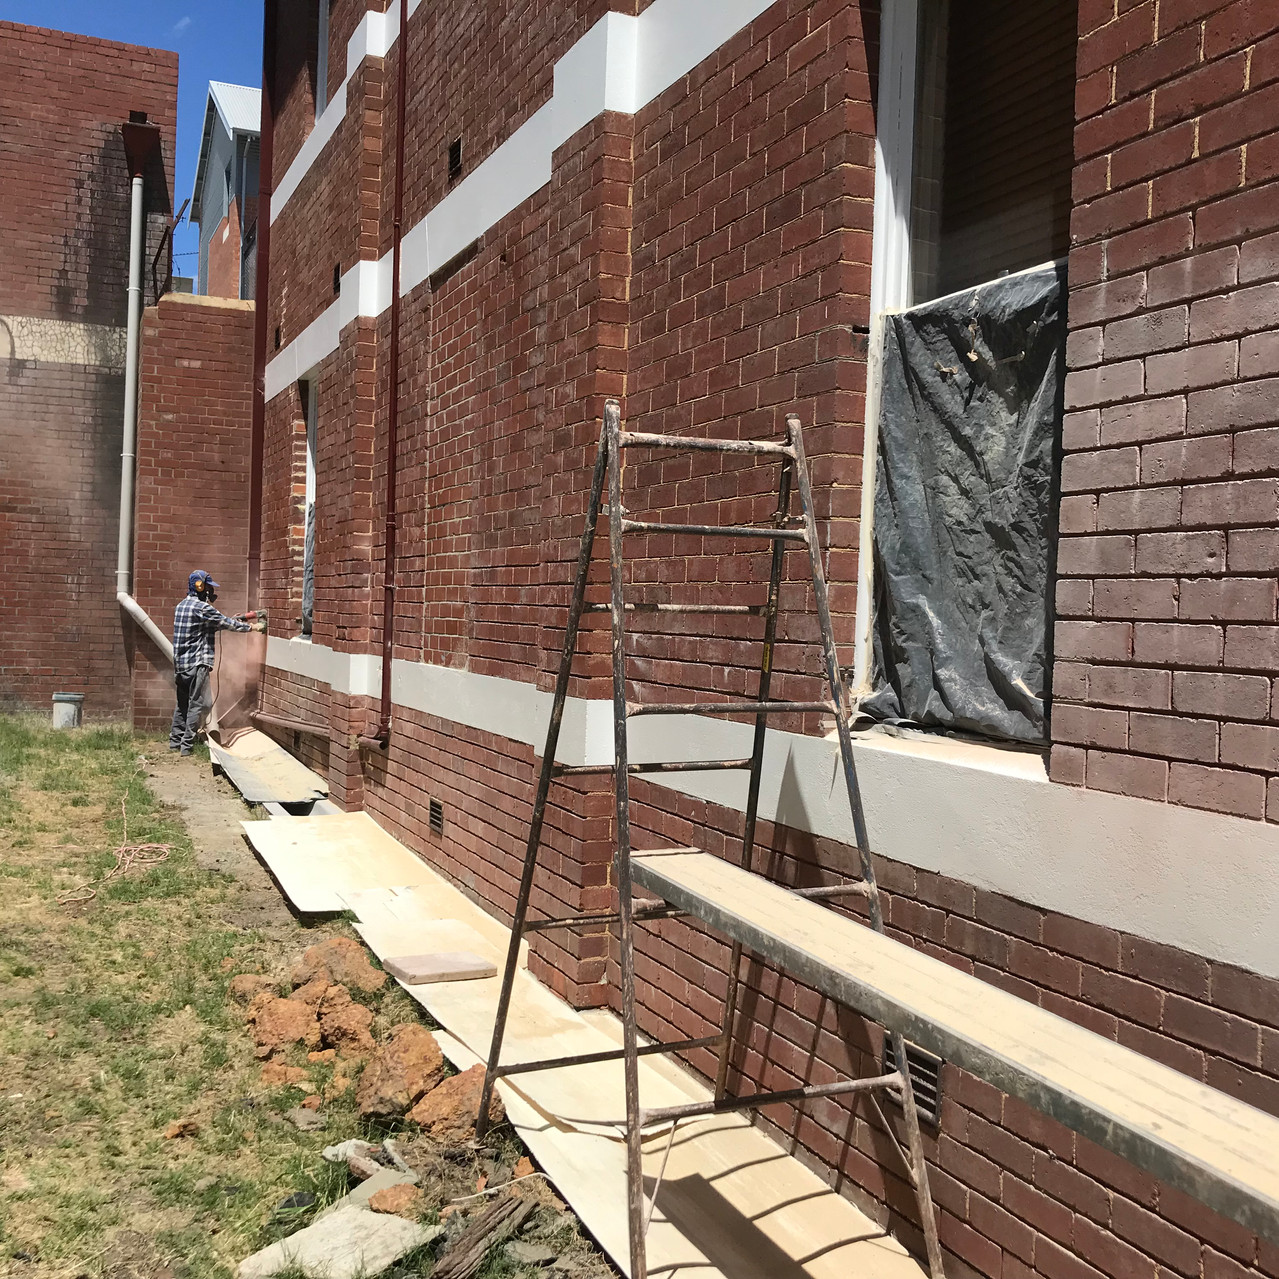 Conspar work to help restore this brick wall belonging to a residential strata complex in Northbridge (Perth) which was causing moisture ingress damage to the apartments within.